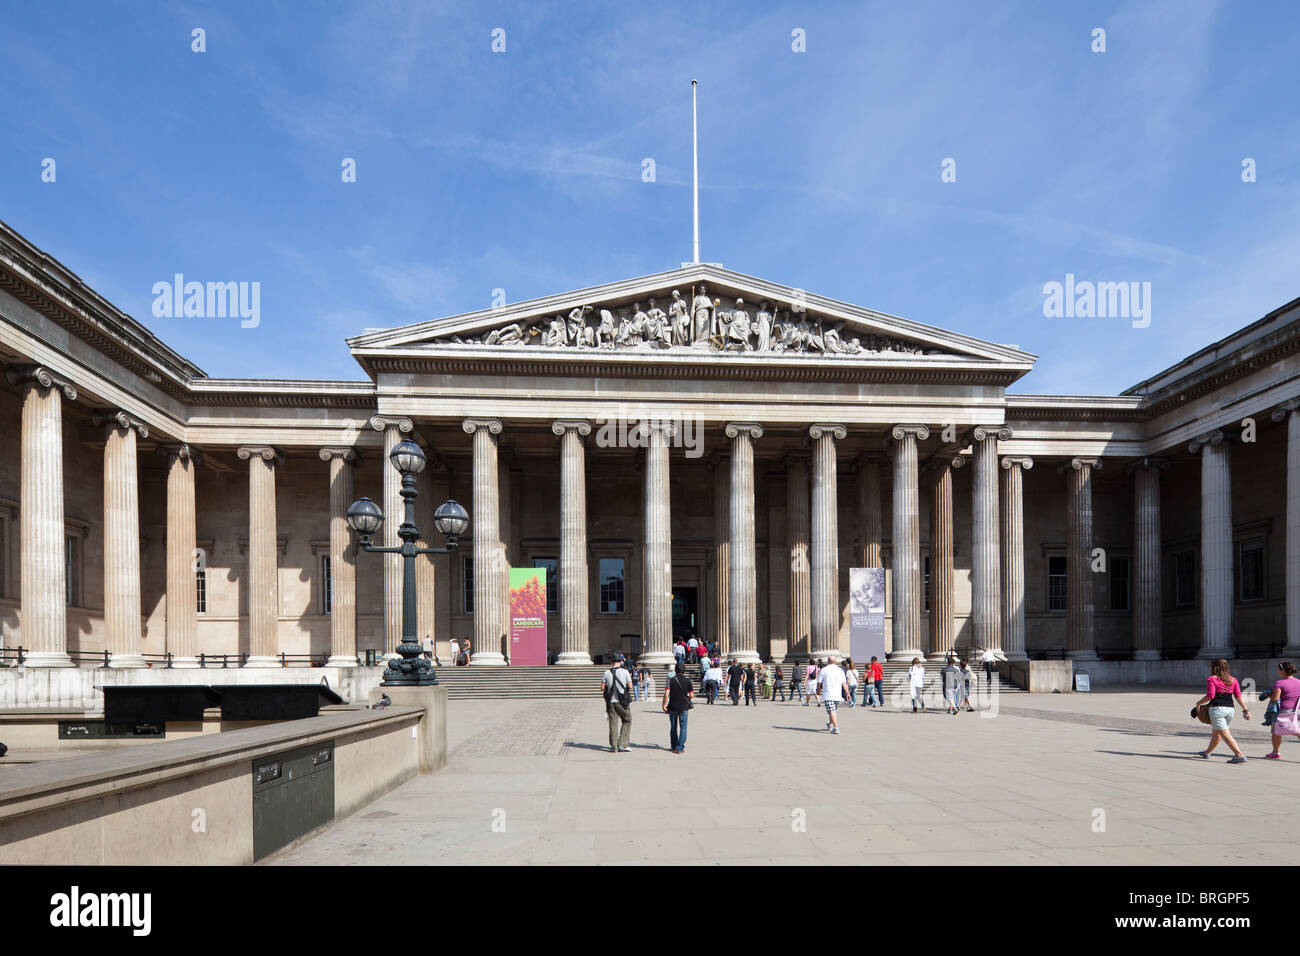 neoclassical architecture entrance columns stock photos